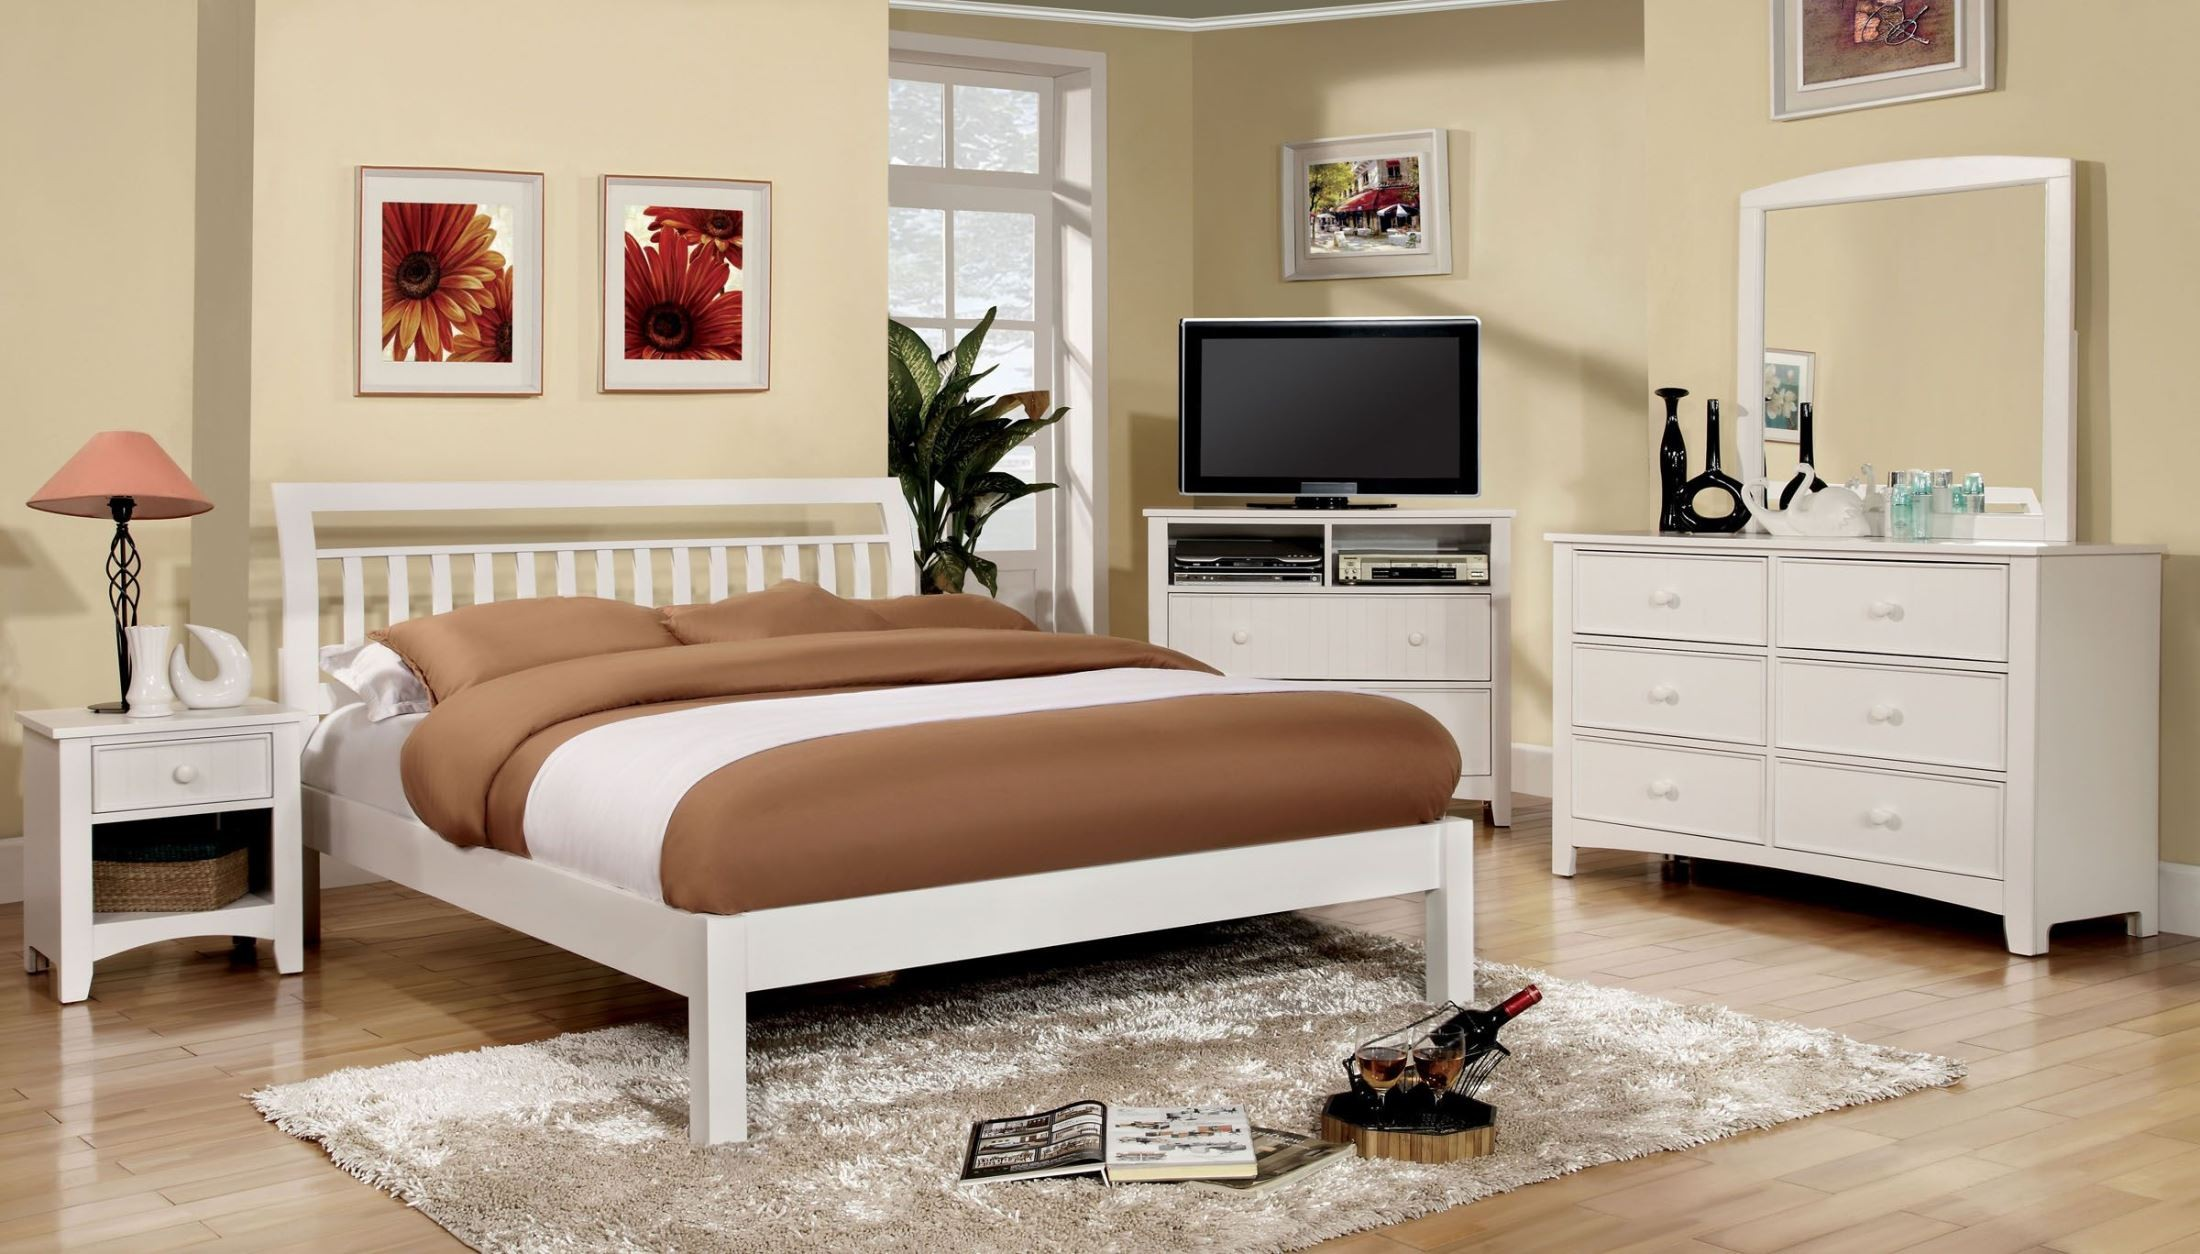 Corry white platform bedroom set from furniture of america cm7923wh q bed coleman furniture - America bedroom furniture ...